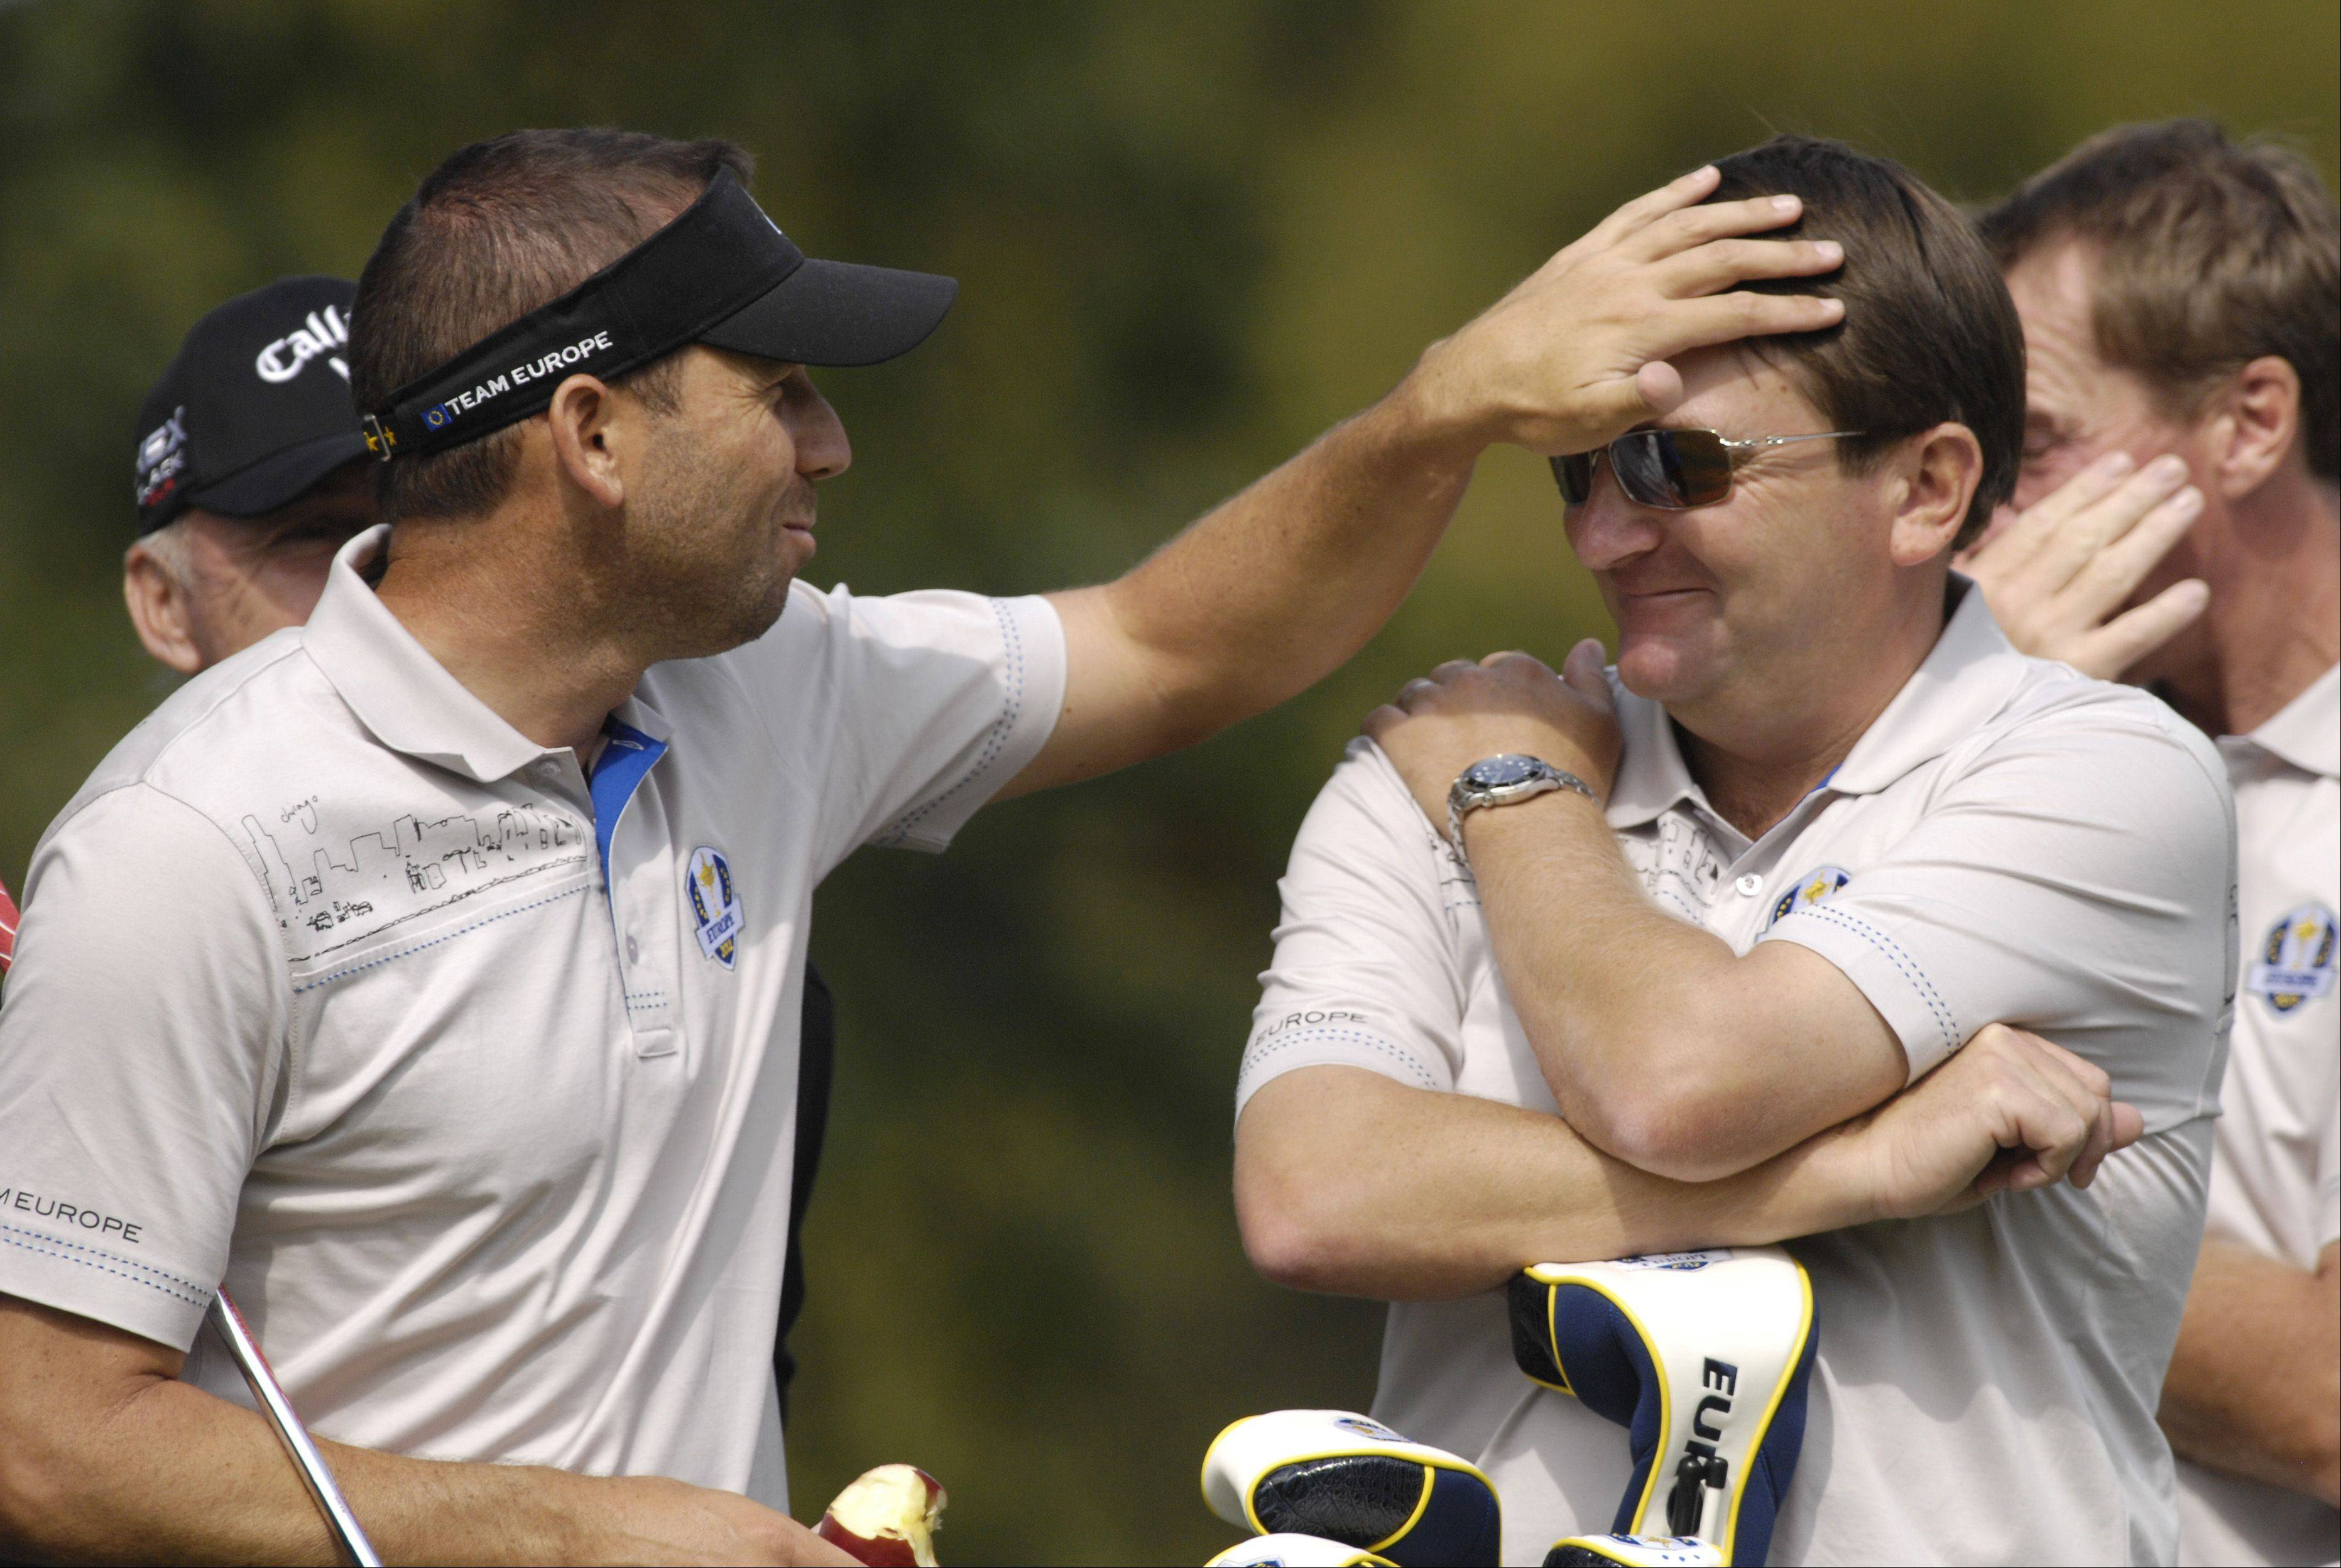 Sergio Garcia of Team Europe pats down the hair of a member of the Team Europe support staff, during practice for the 2012 Ryder Cup.